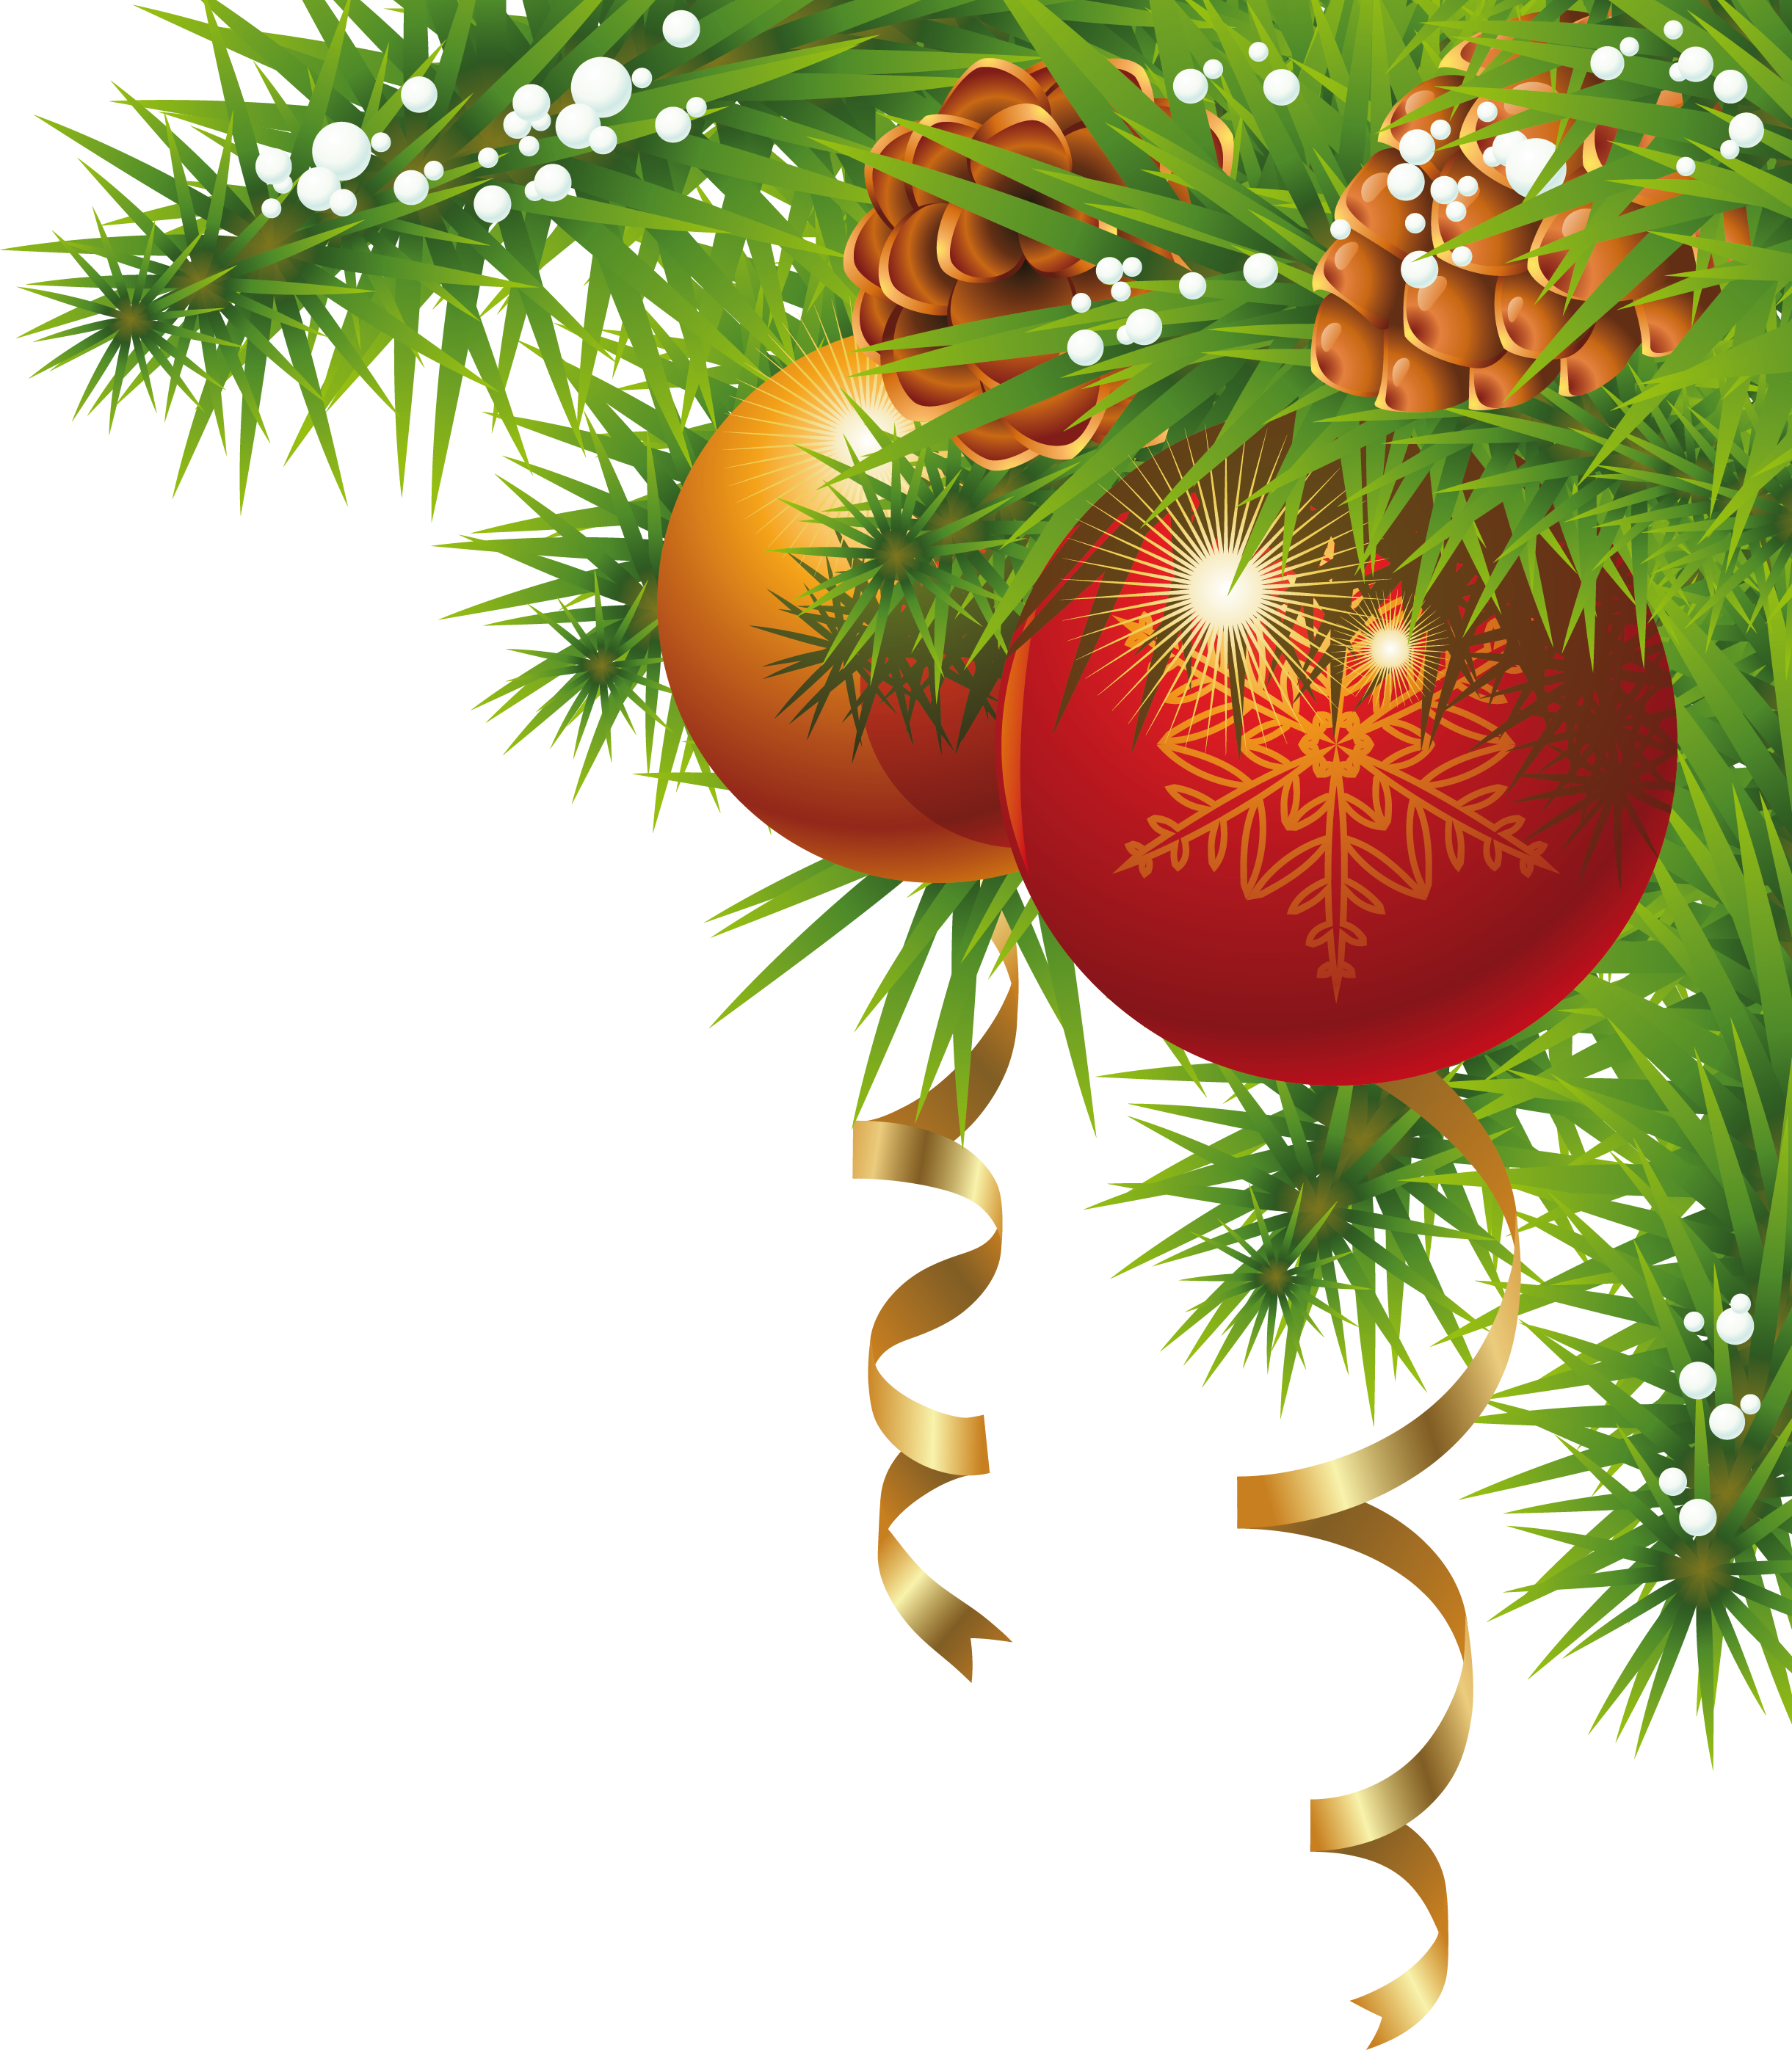 Christmas png images. Download image